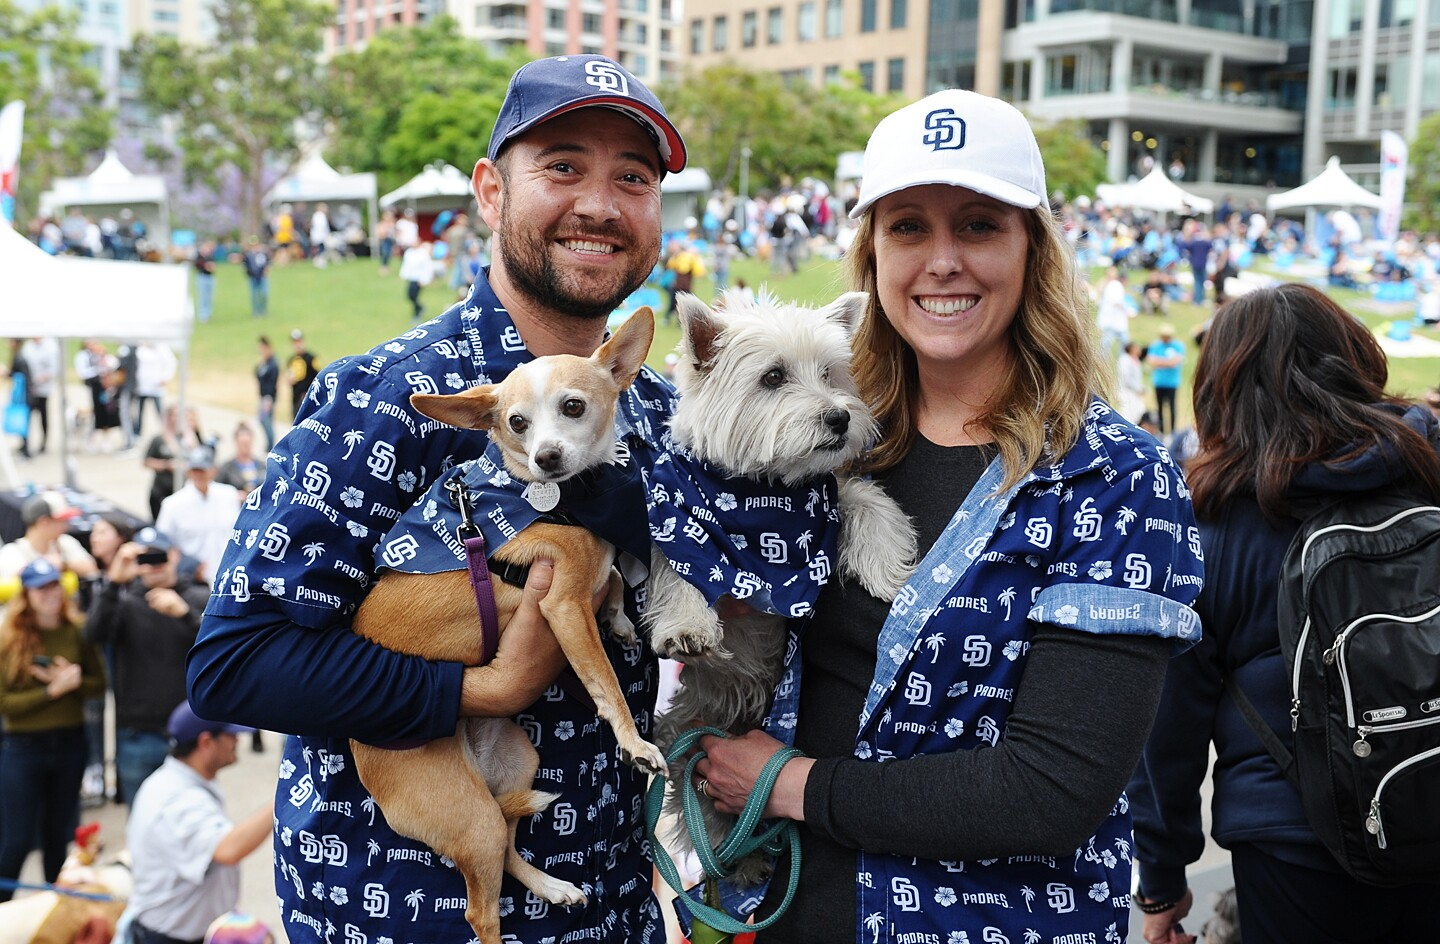 Lucky dogs (and their owners) got to spend the afternoon on the field at Petco Park for Padres Dog Days of Summer on Tuesday, June 4, 2019.